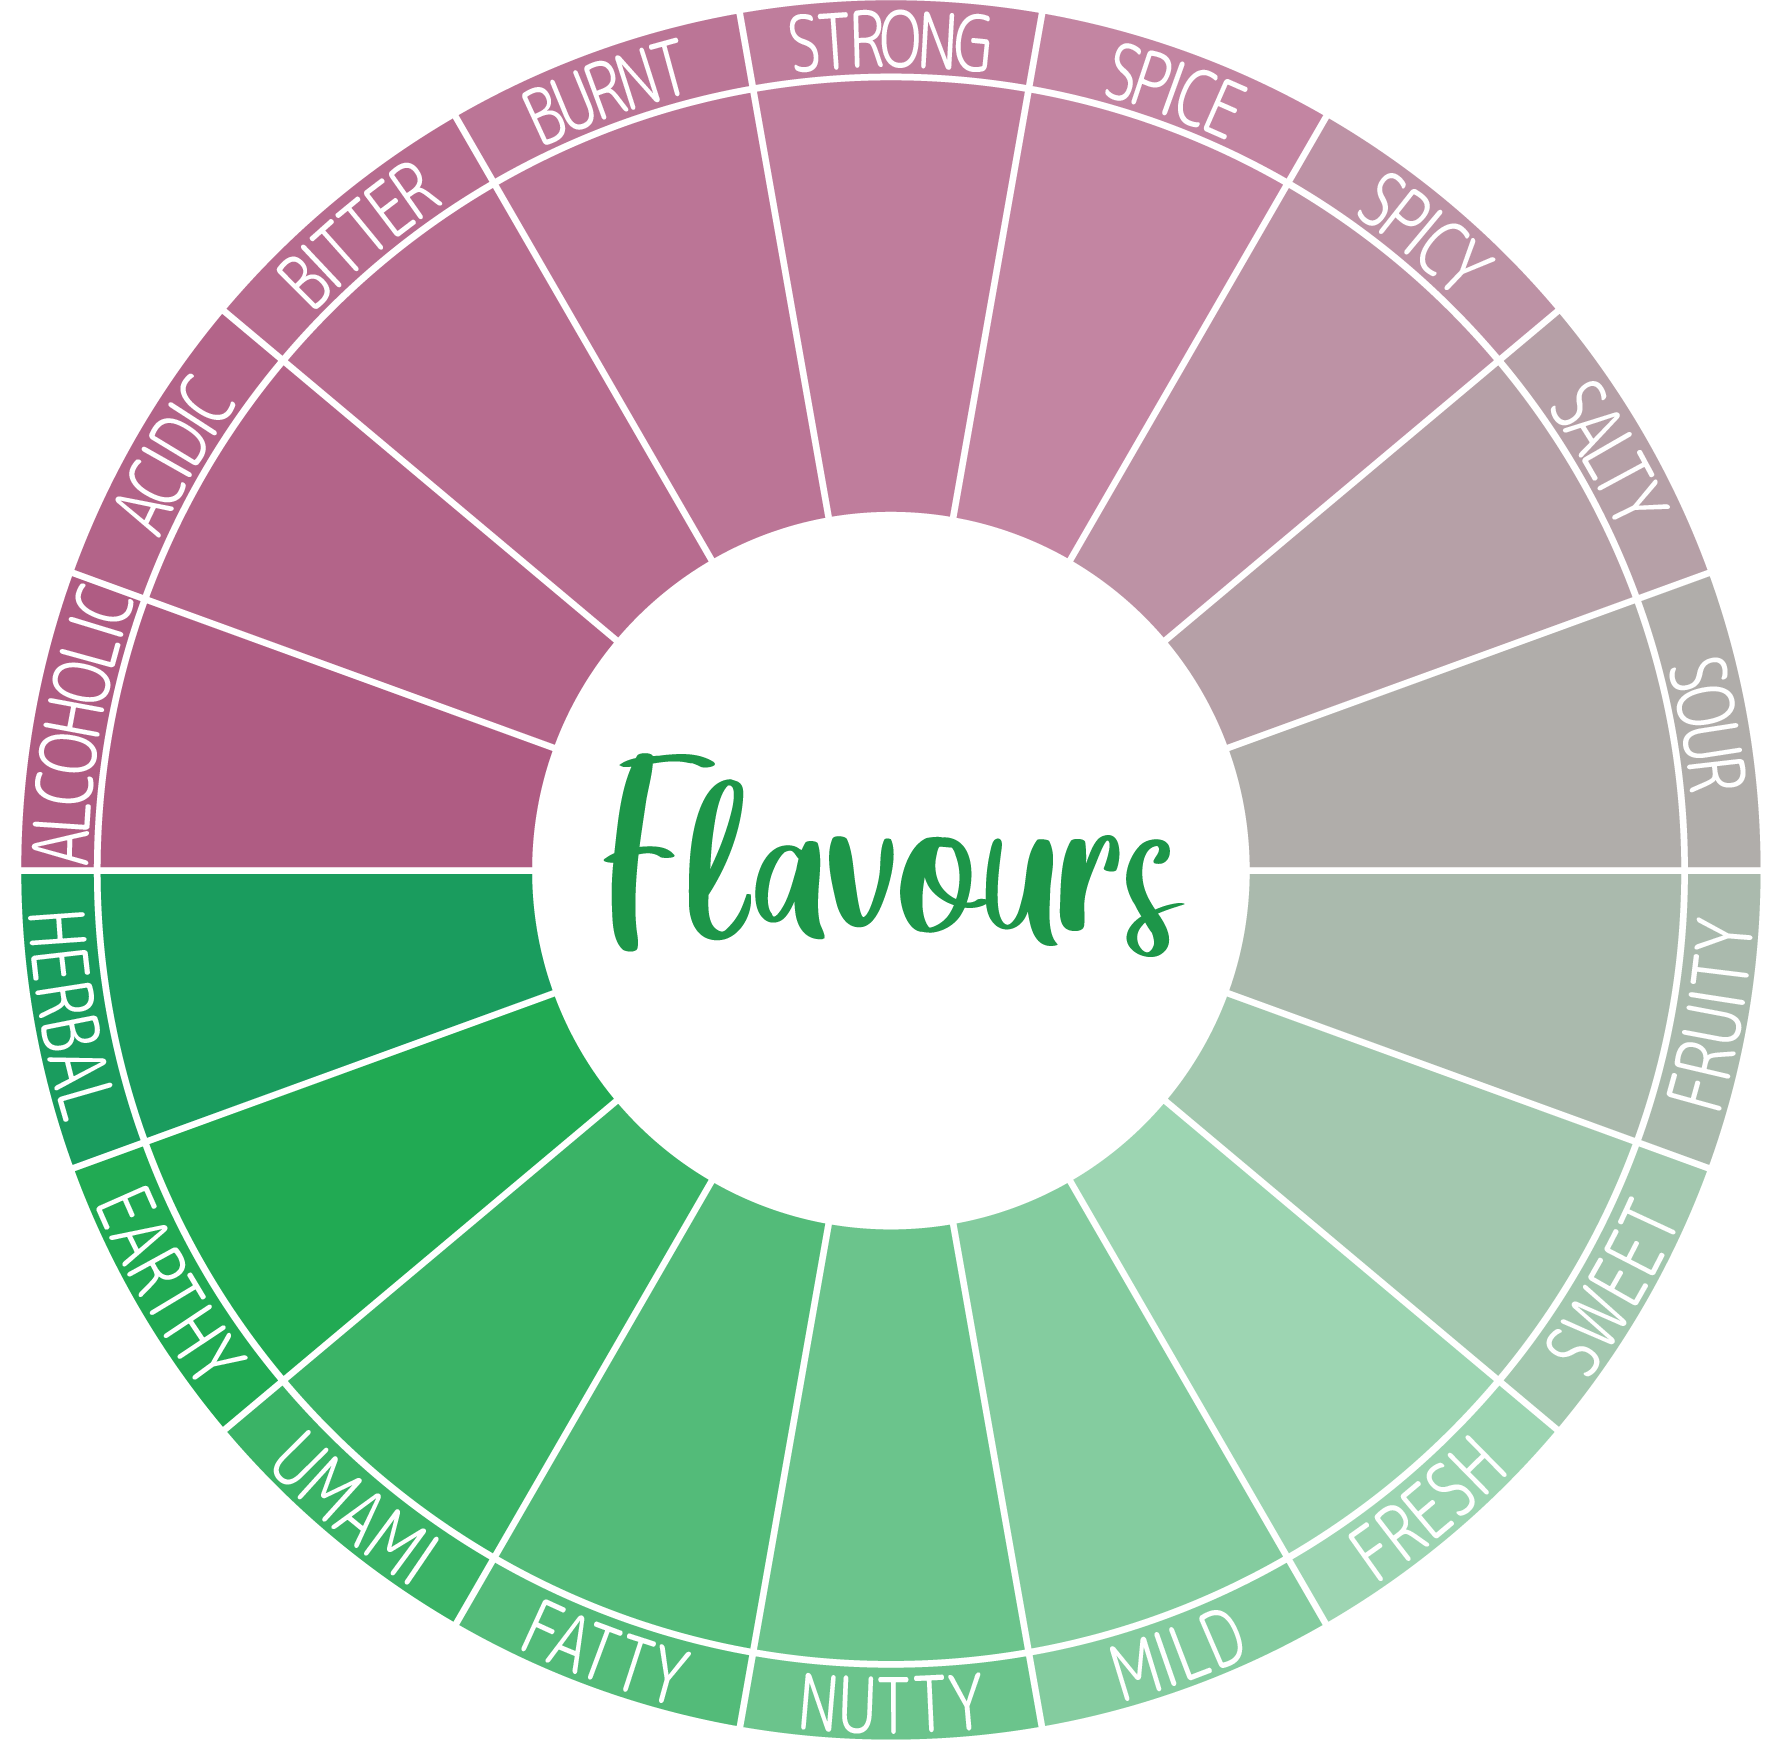 Relative attribute weights - Flavours